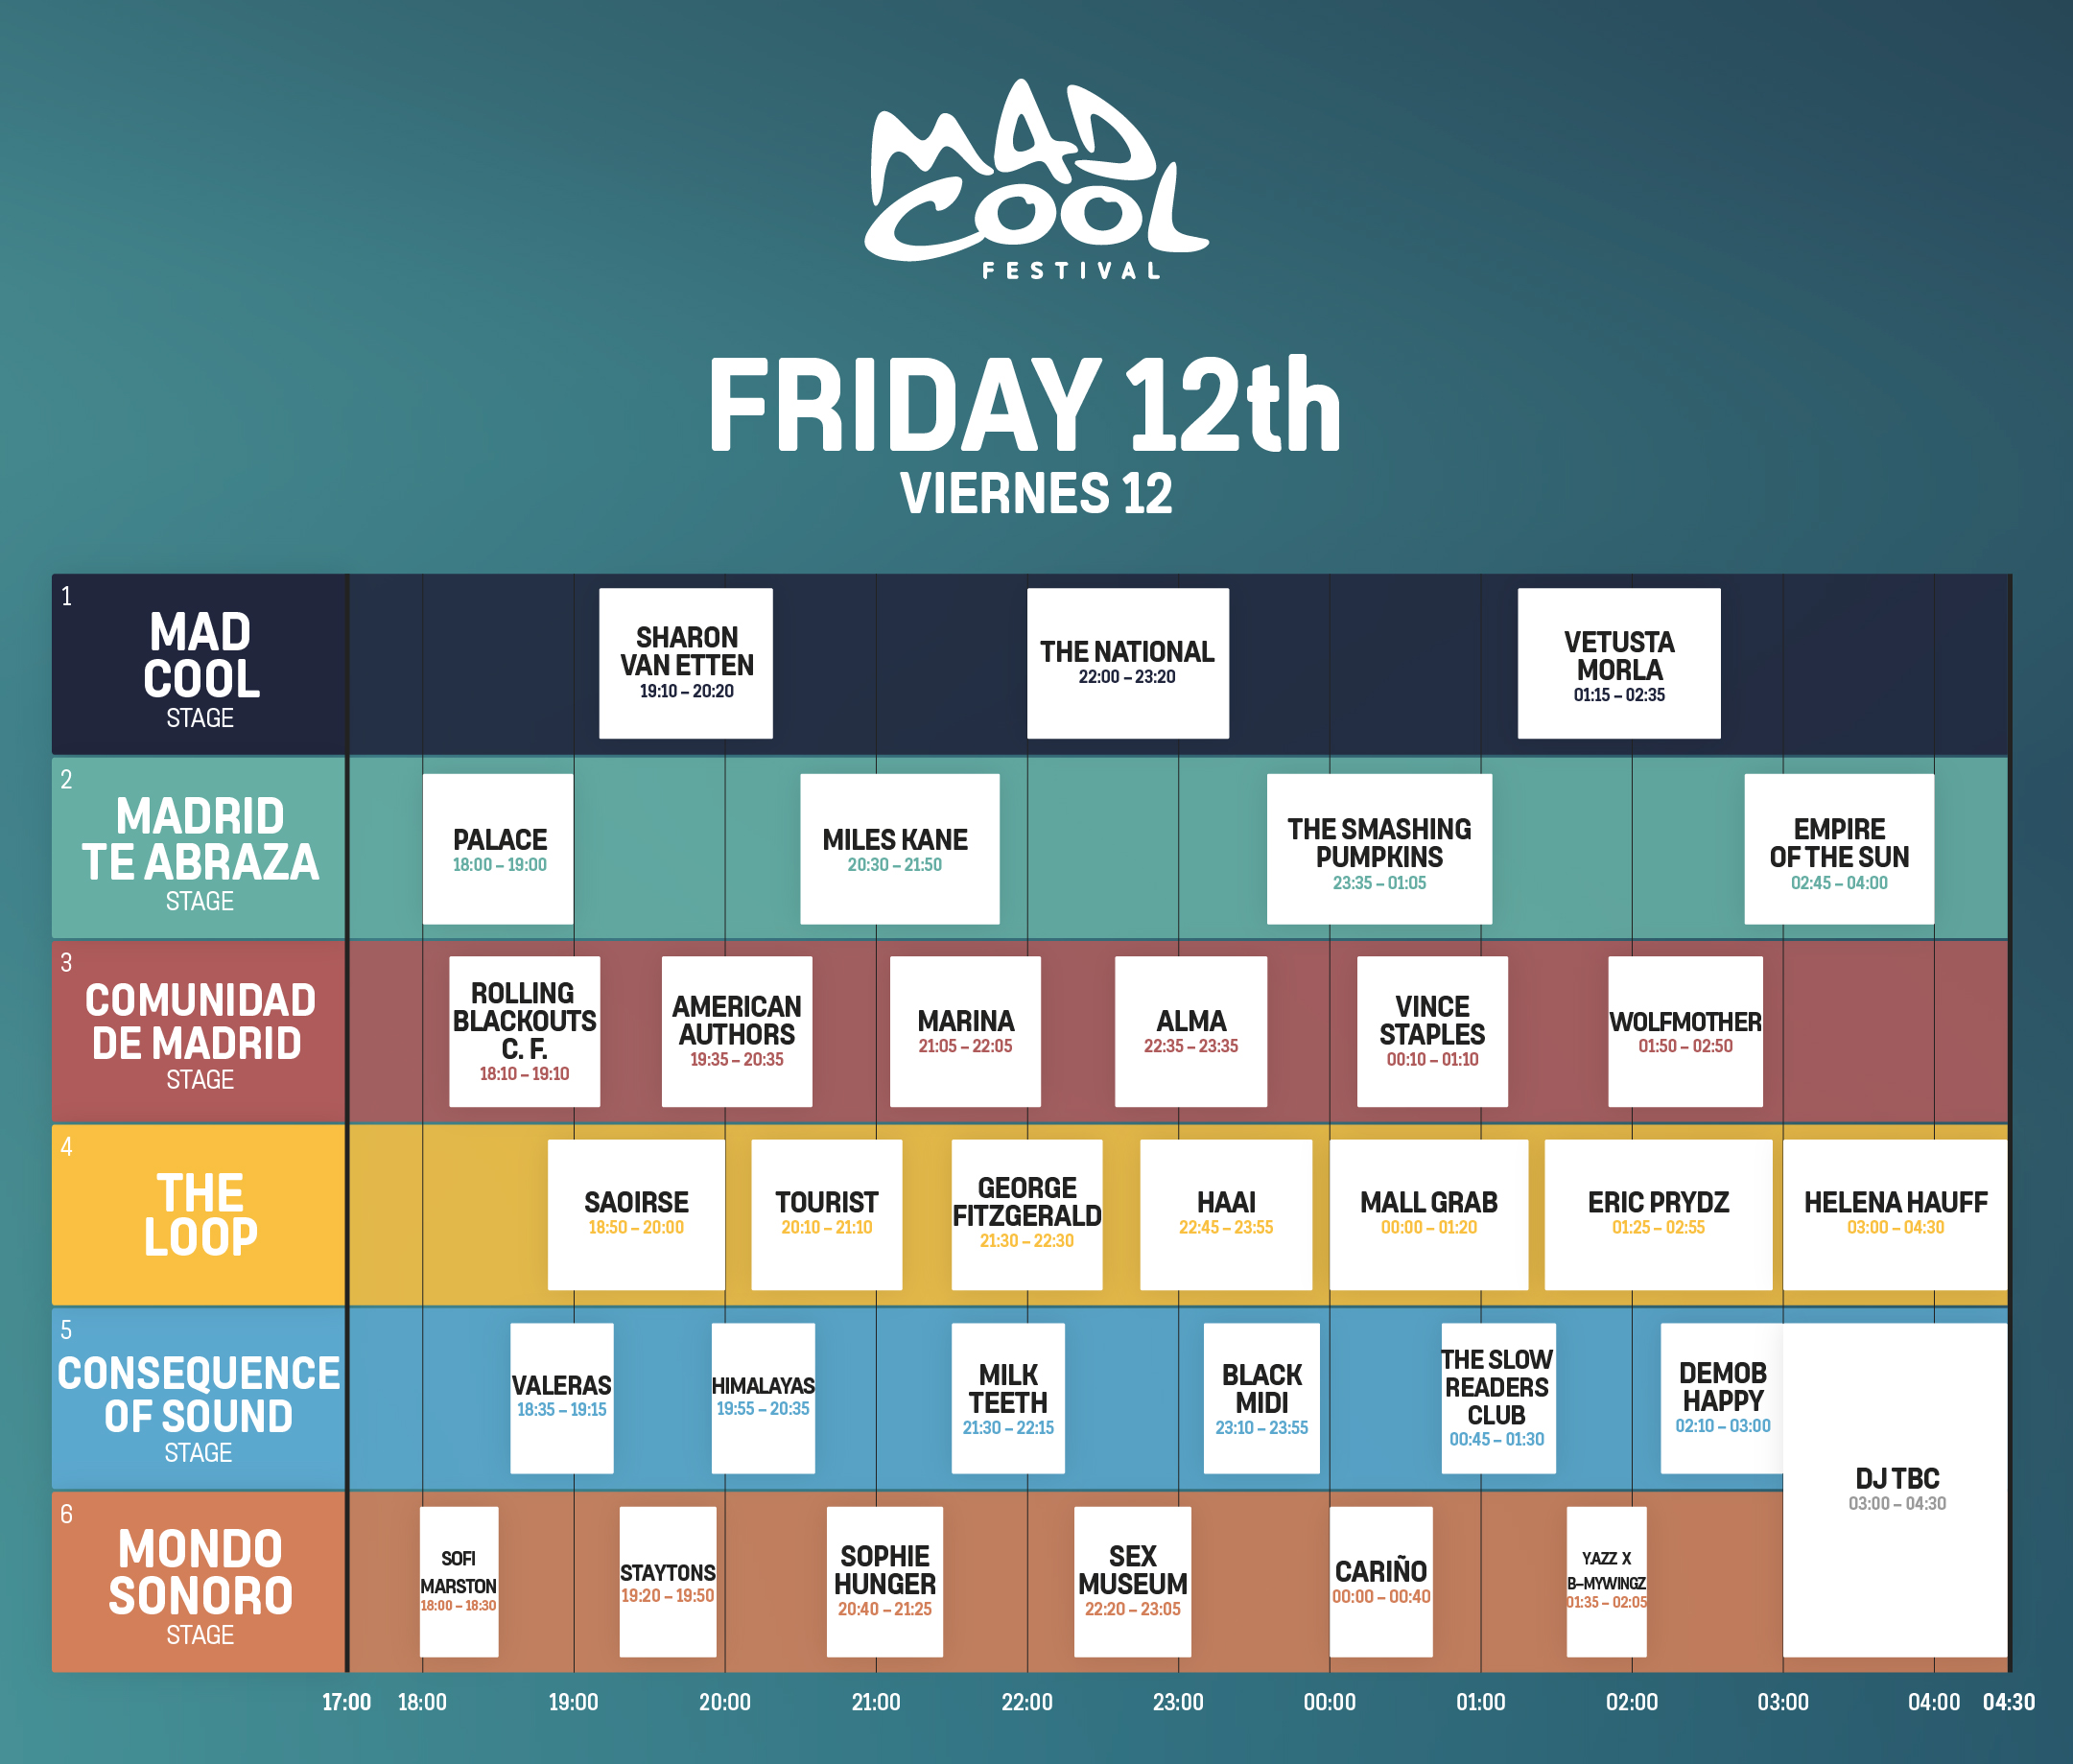 mad cool stage lineup 2019 lineup